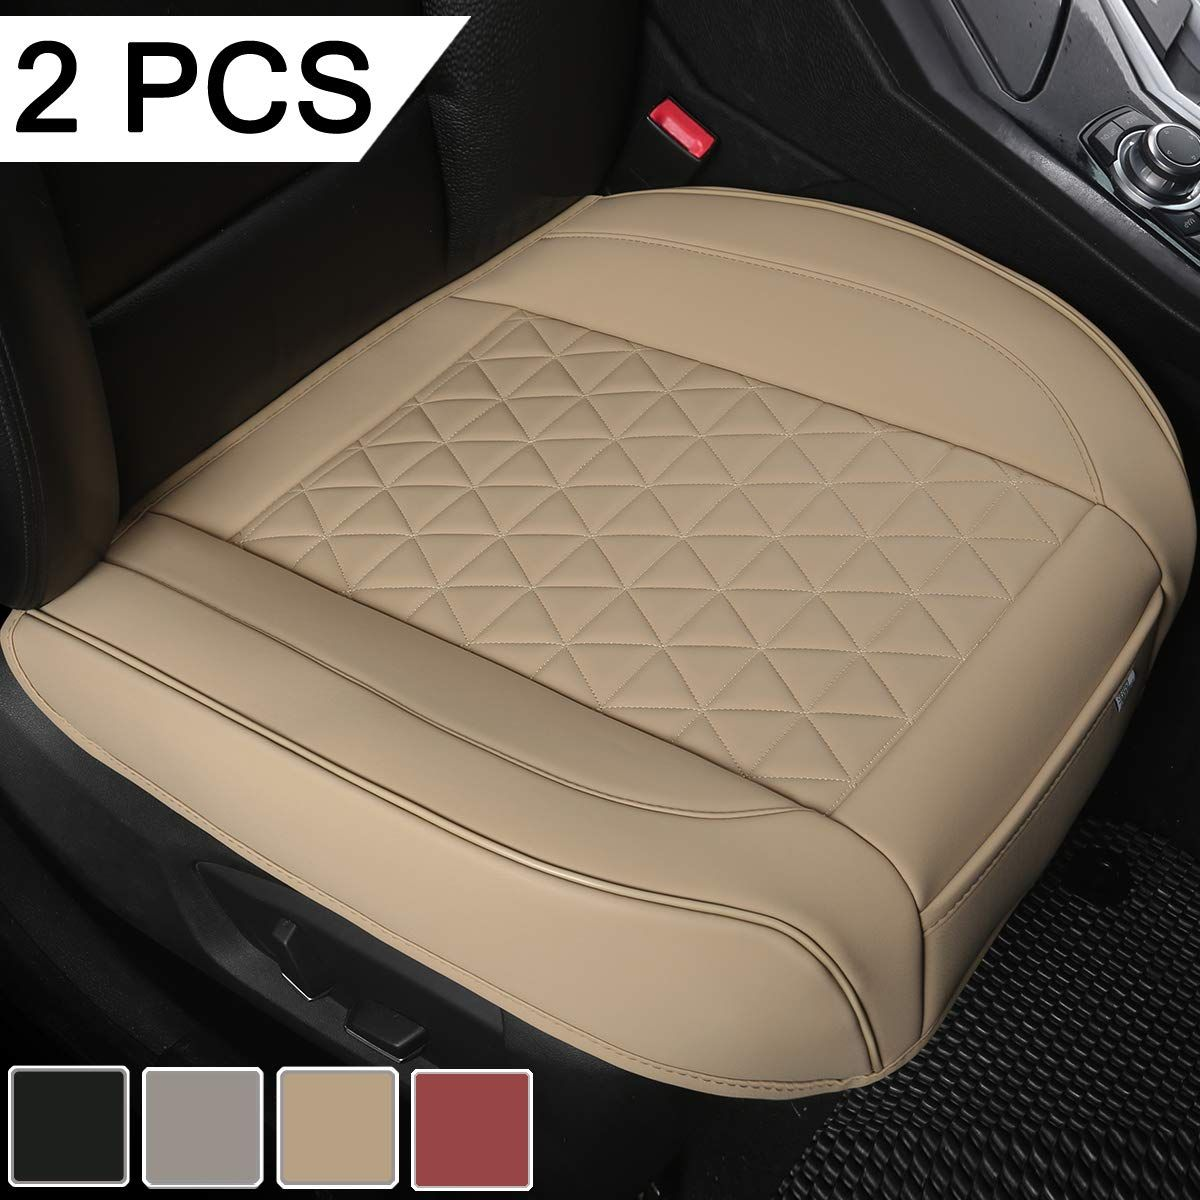 LUCKYMAN CLUB Car Seat Covers fit Sedan SUV fit for Nissan Altima Murano Frontier Maxima Xterra Chevy Cruze Impala Malibu Equinox HHR Mazda cx5 cx7 Full Set, Black